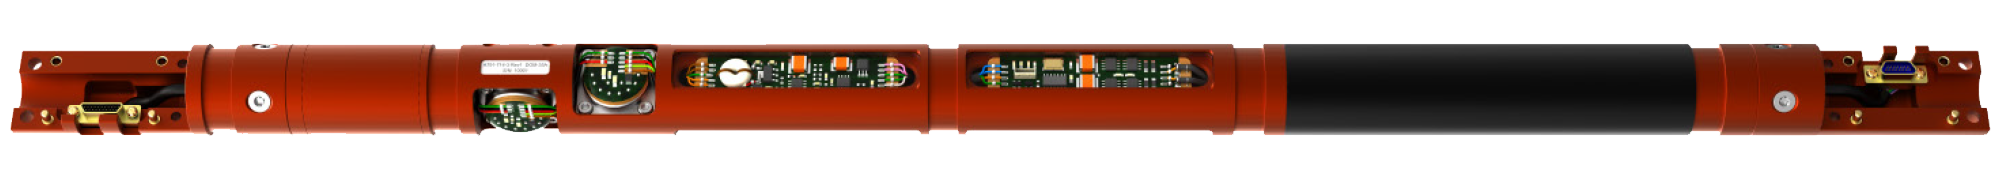 DOM-35A